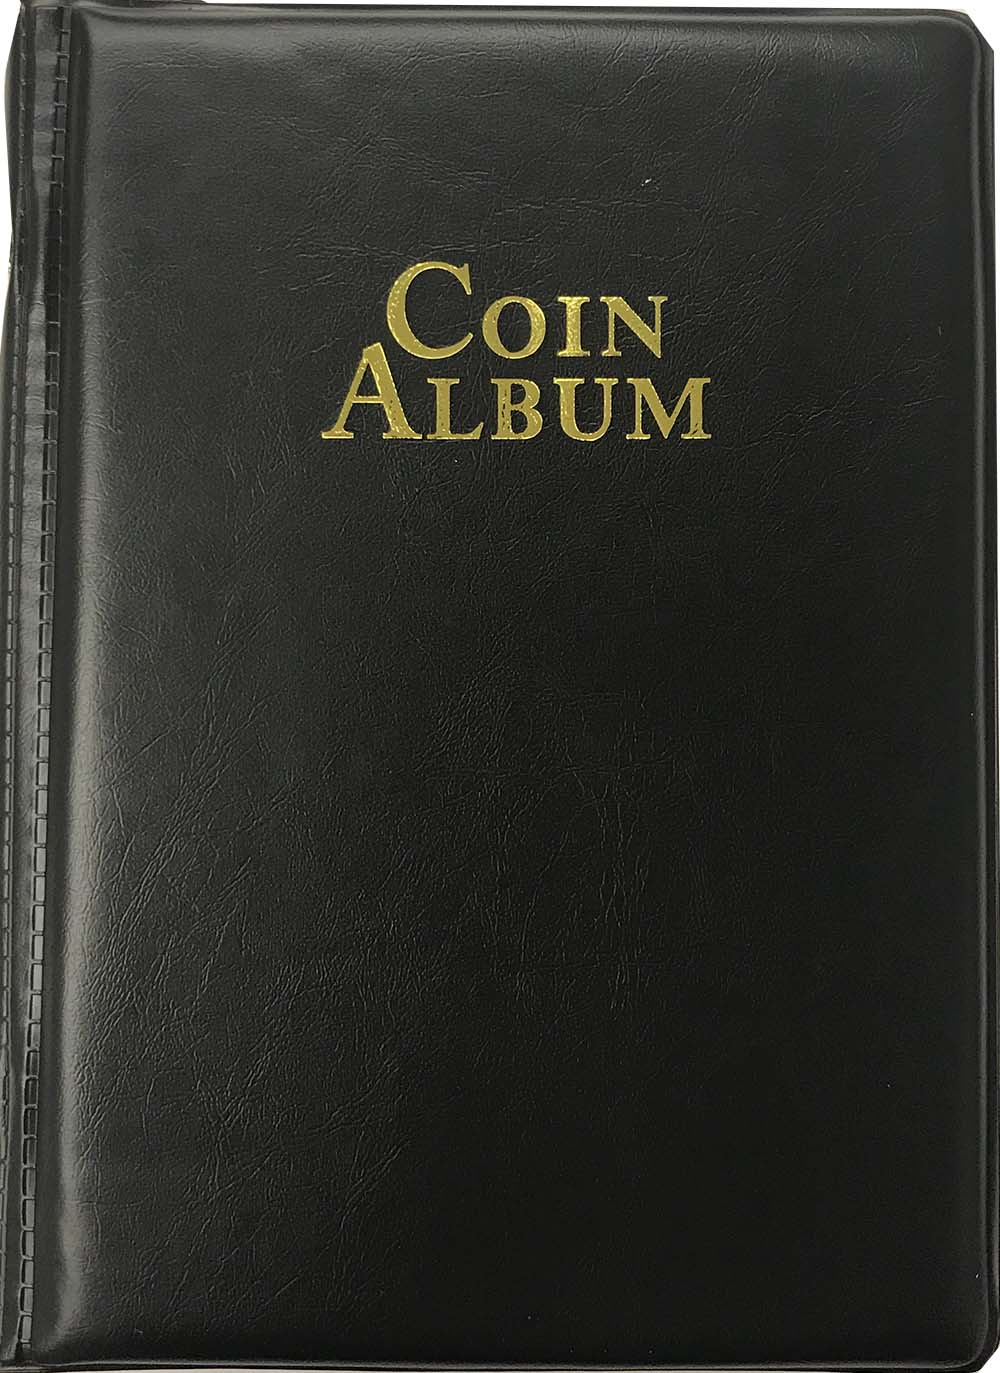 New Lighthouse 60 Pocket NUMIS Mini Coin Album Wallet Case For 2x2 Mylar Flips